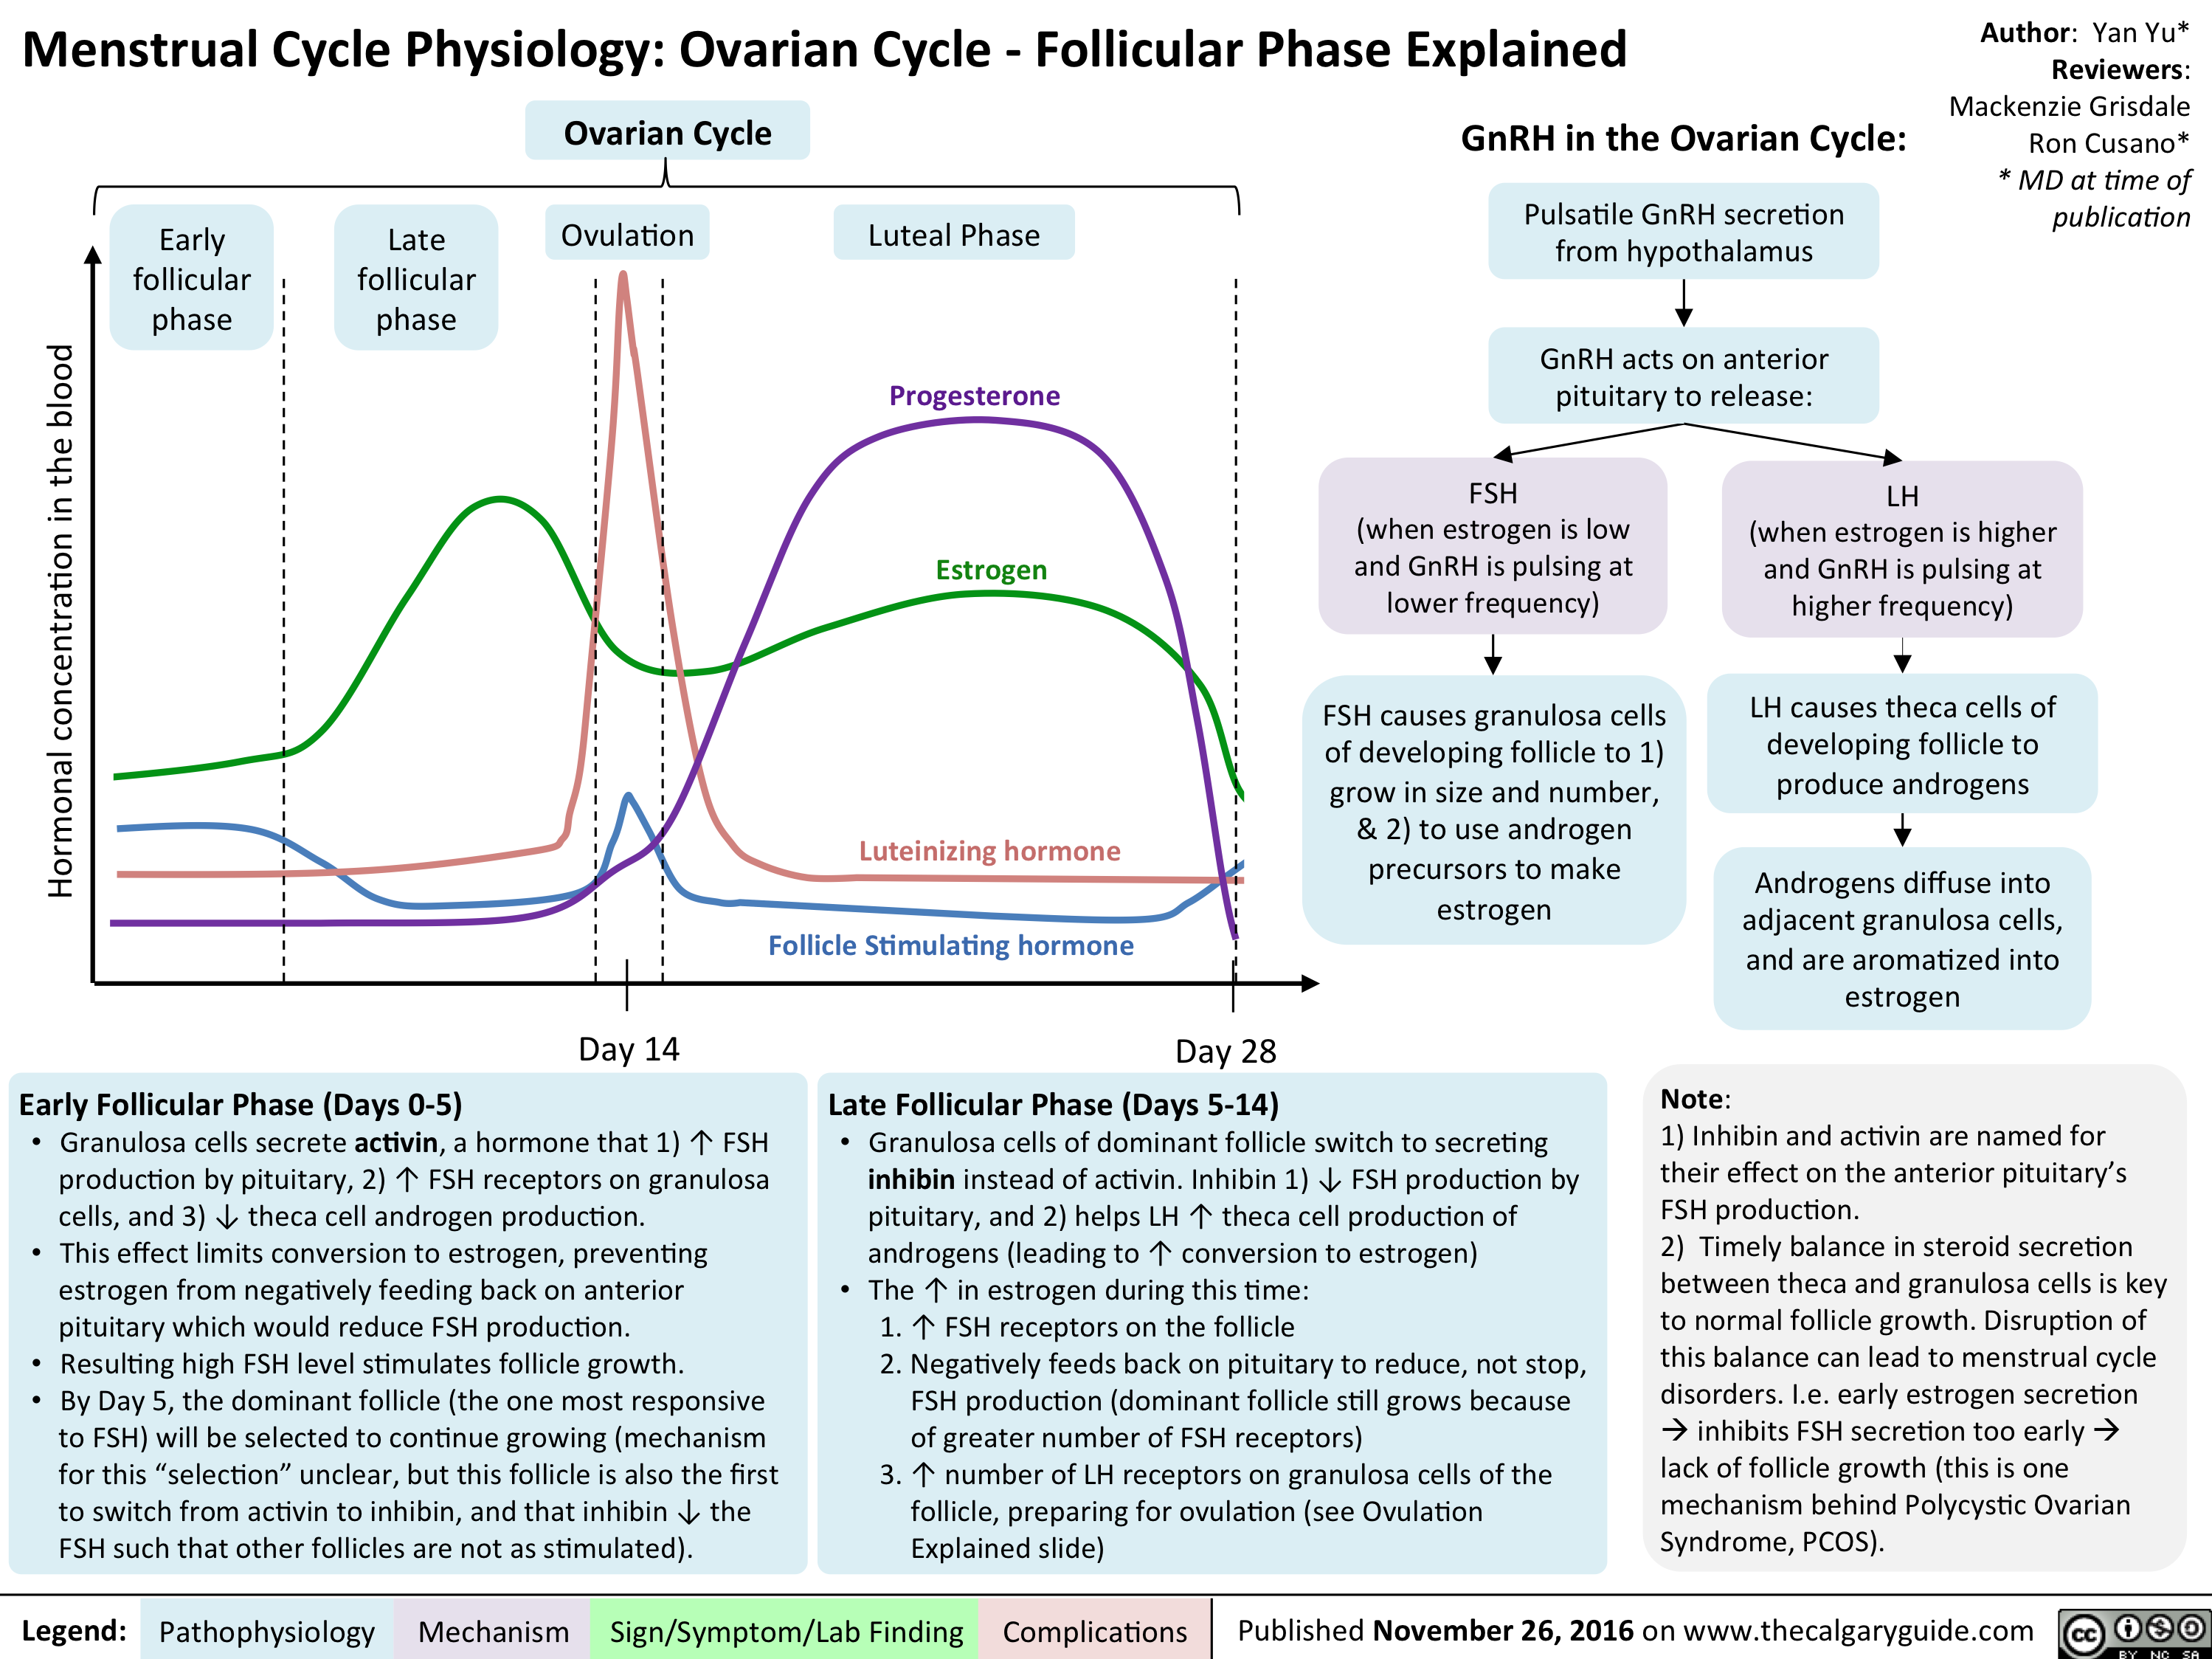 menstrual-cycle-physiology-ovarian-cycle-follicular-phase-explained